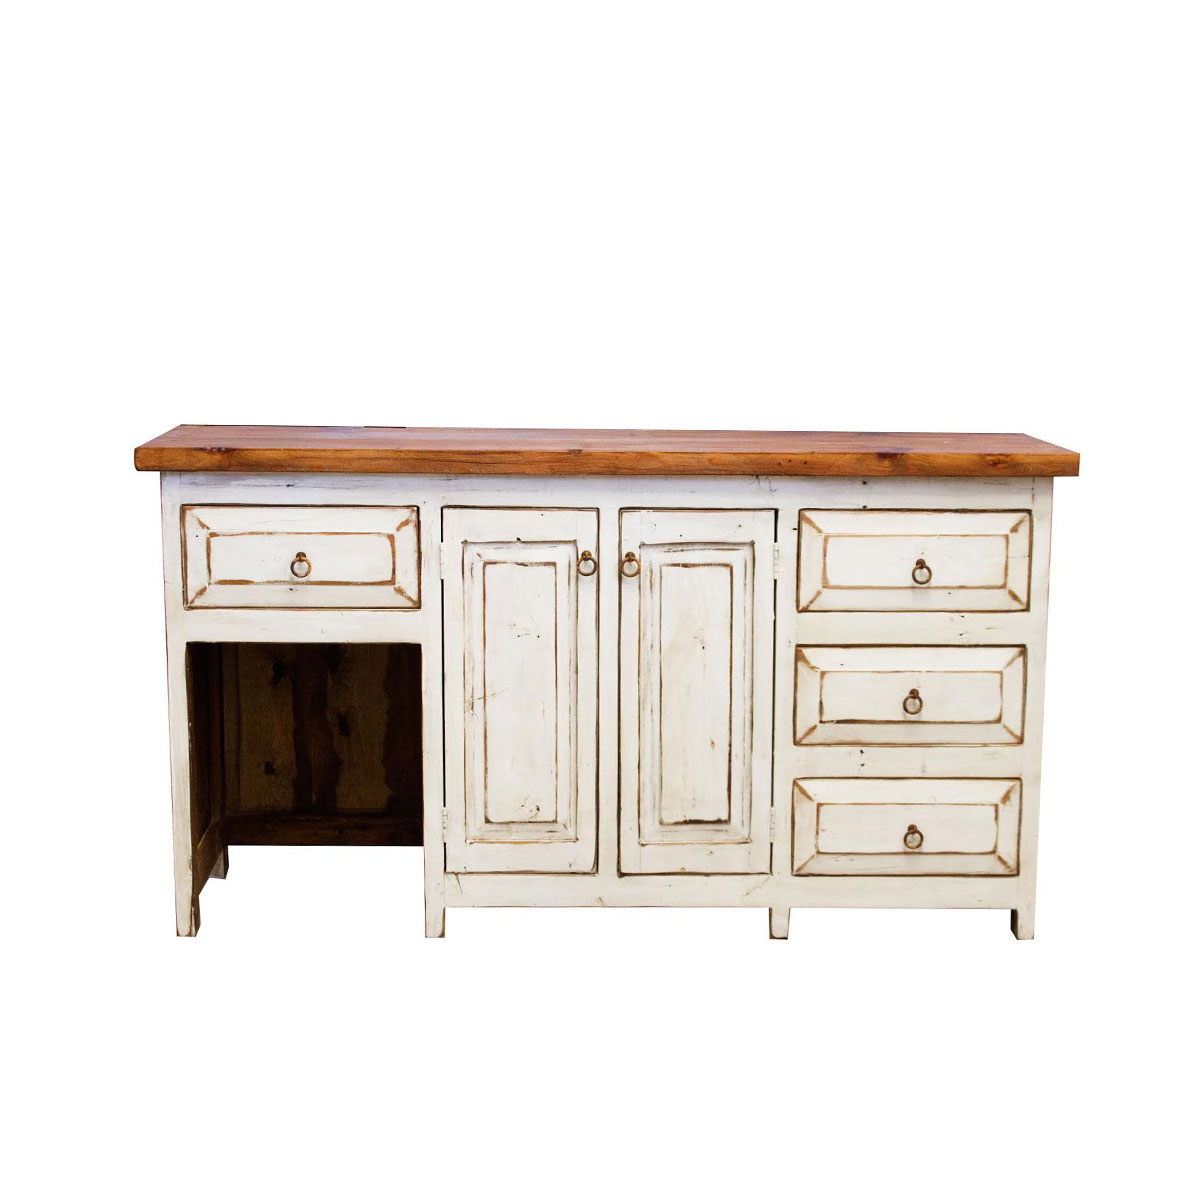 Purchase Rustic Vanity With Sitting Area Online